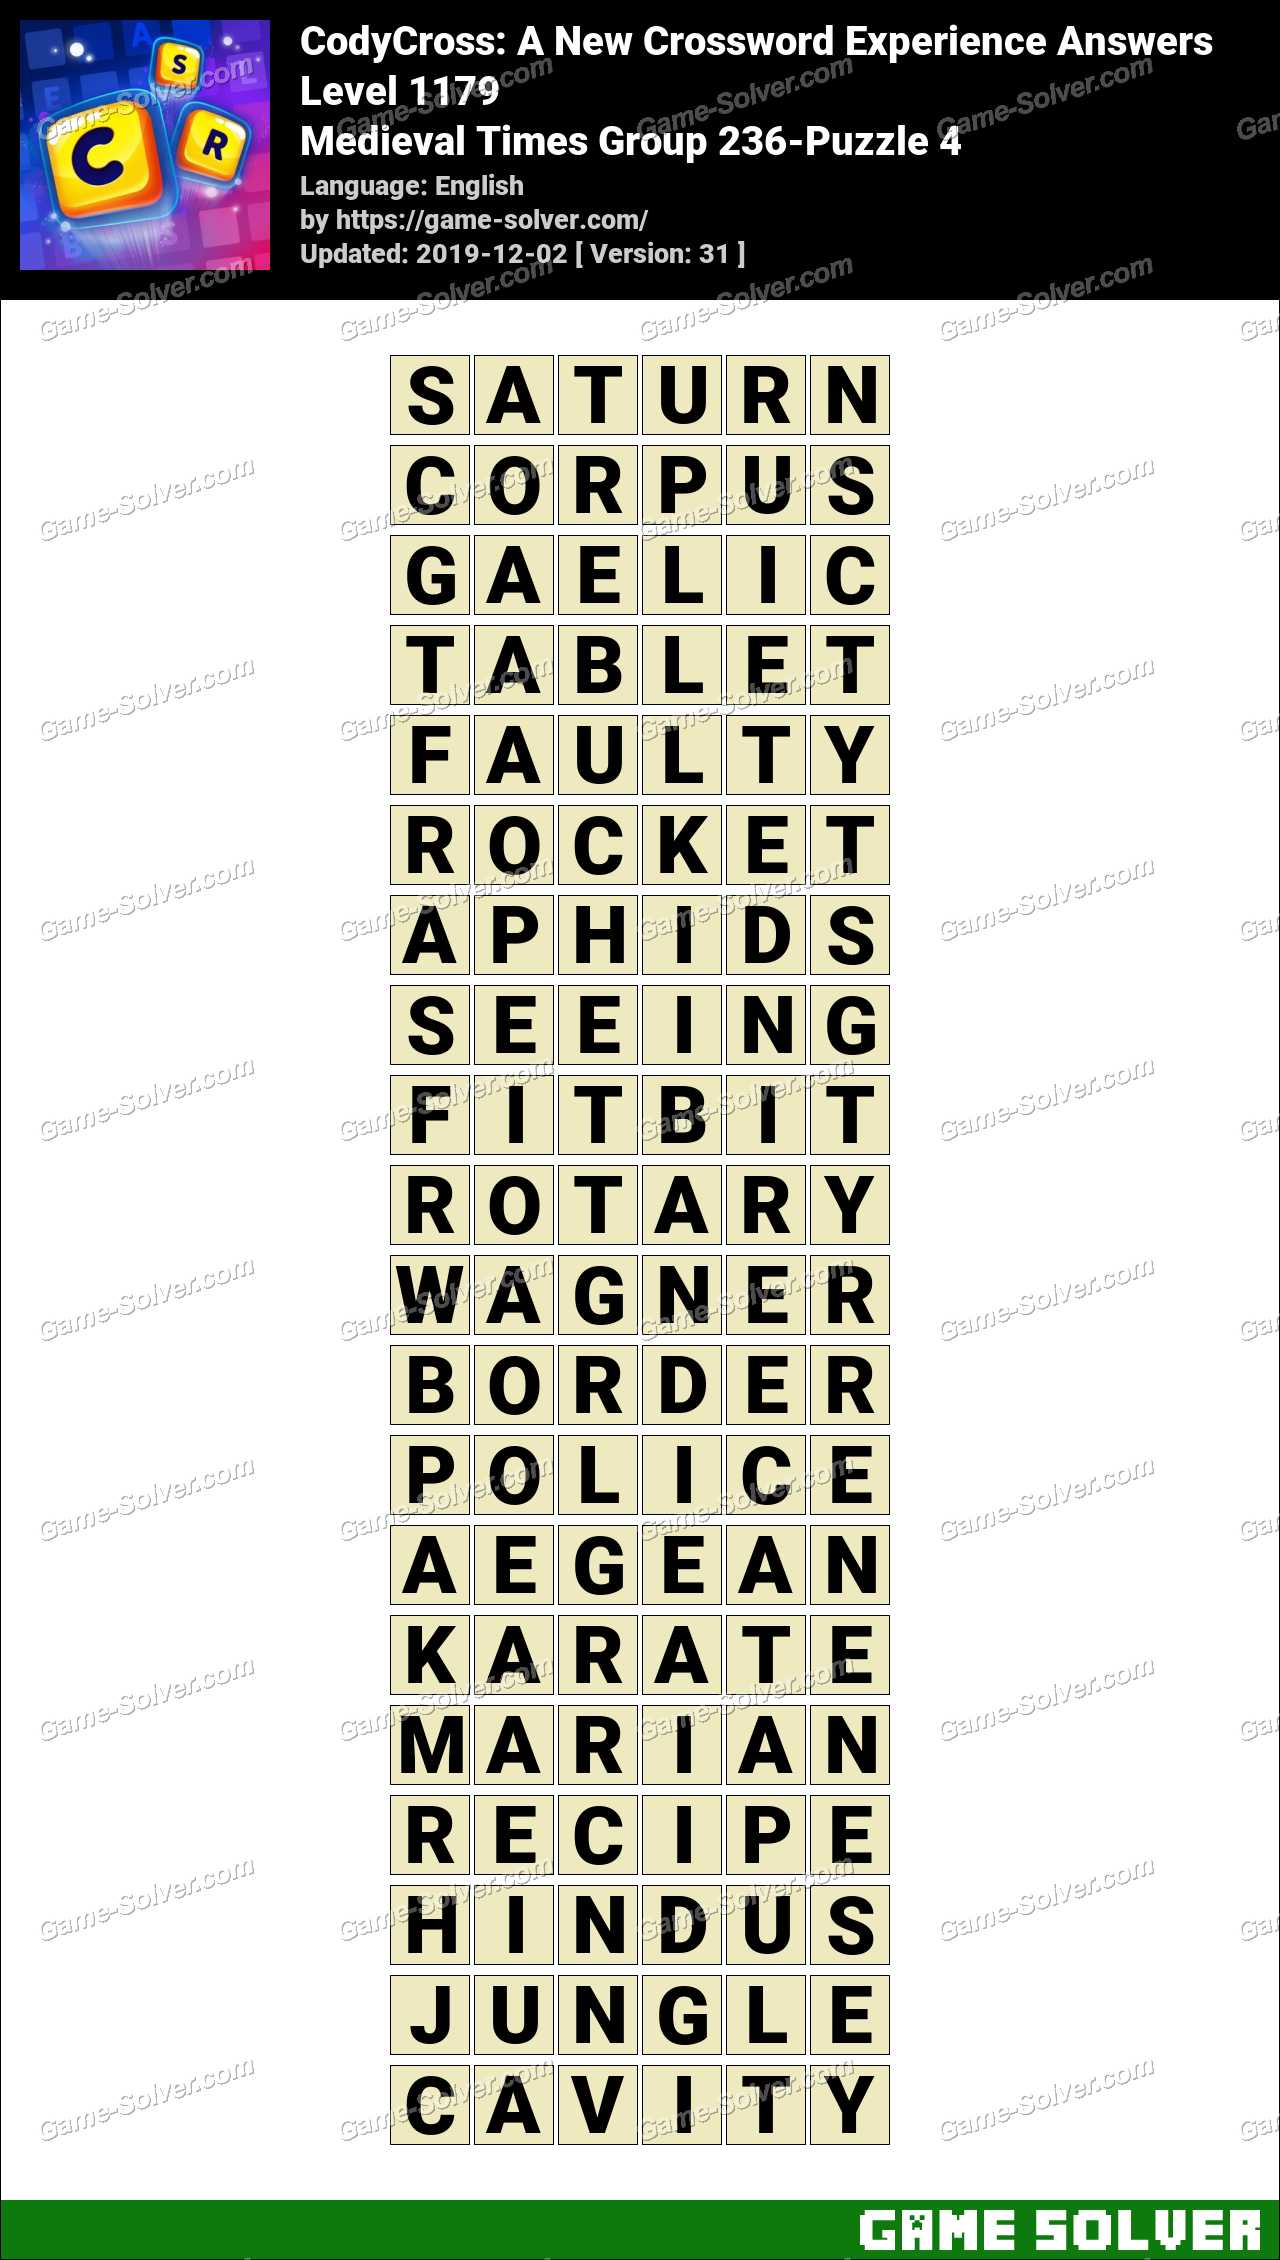 CodyCross Medieval Times Group 236-Puzzle 4 Answers